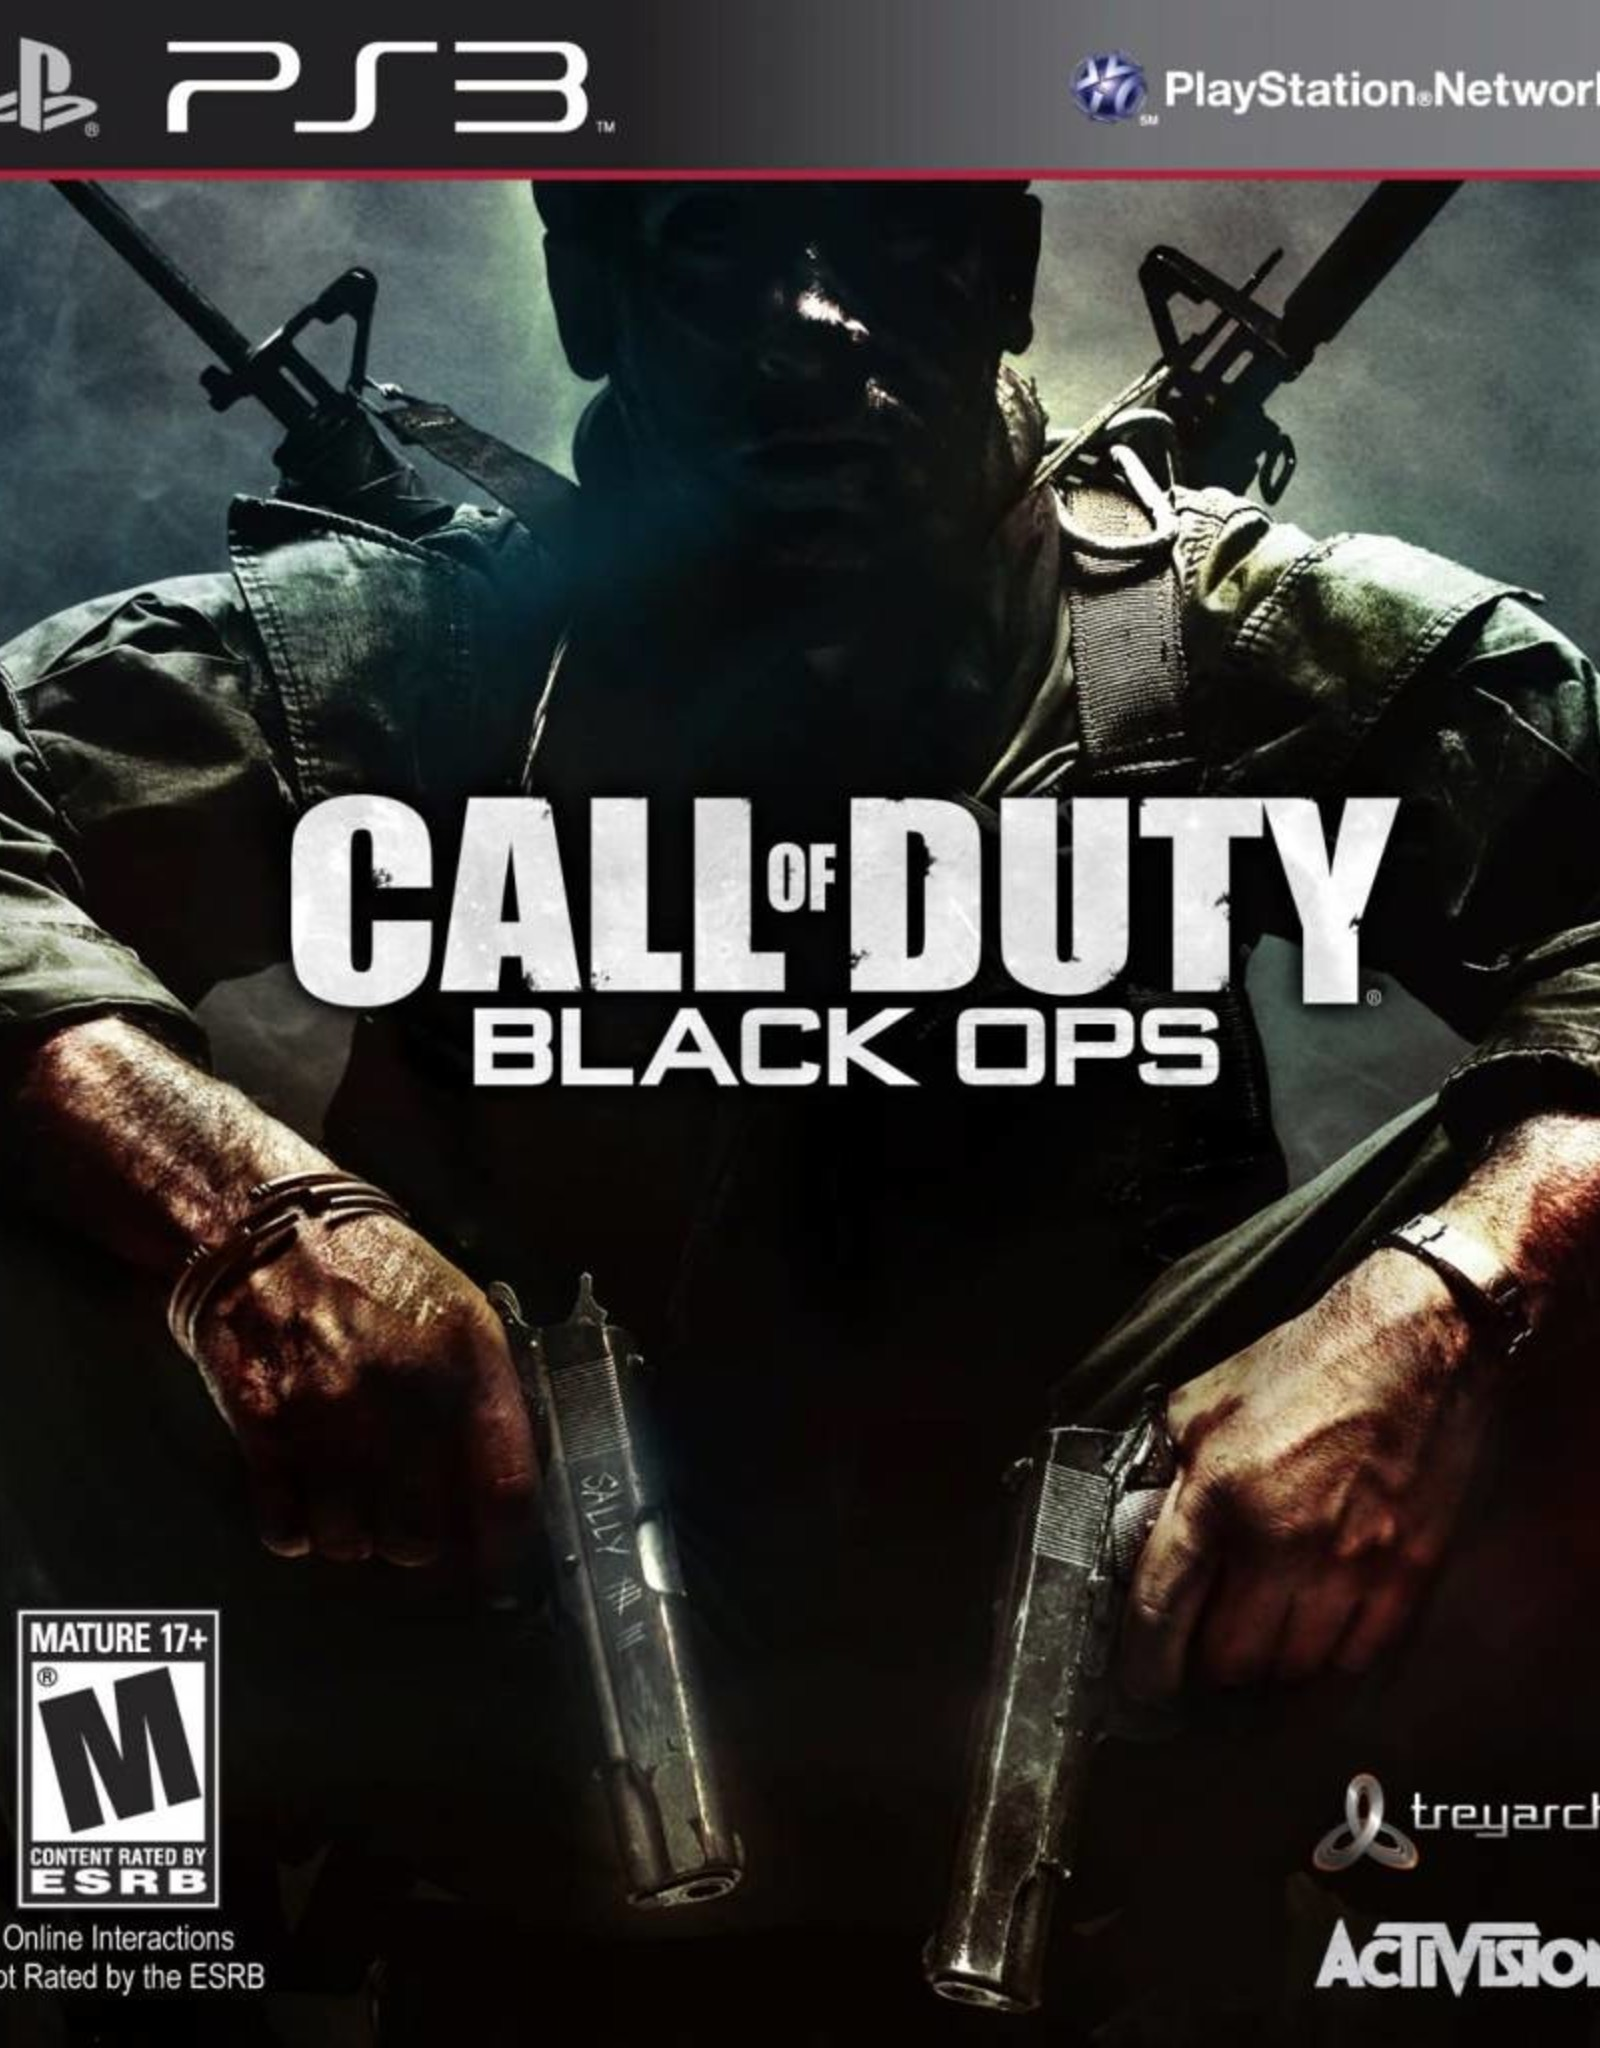 Call of Duty: Black Ops - PS3 PrePlayed